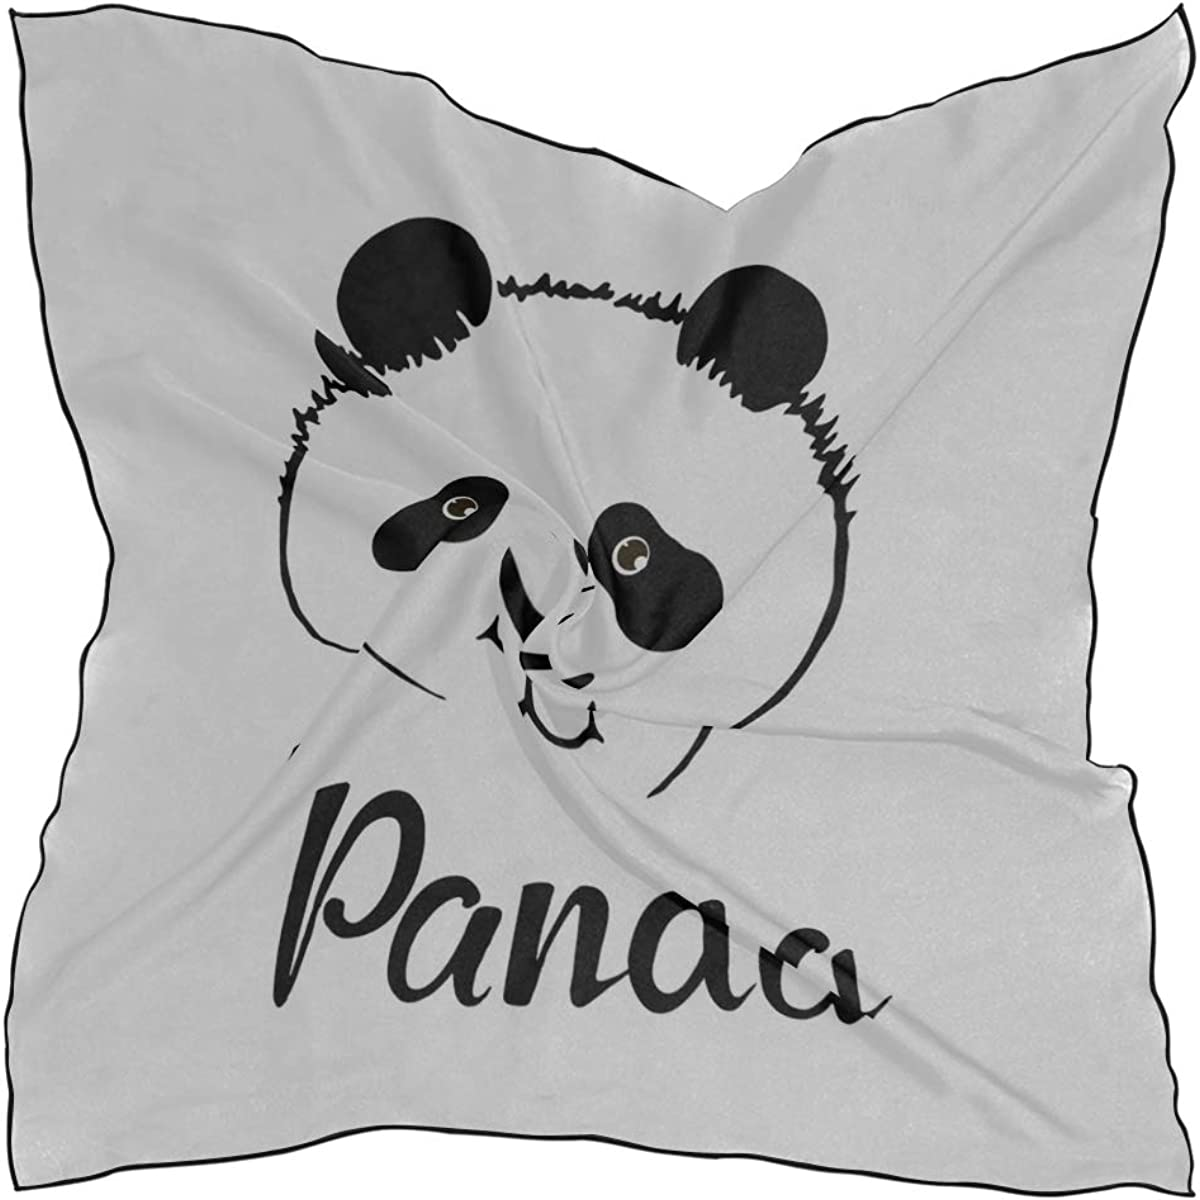 Soft Polyester Silk Scarfs For Women Lightweight Fashion Print Chinese Panda Cartoon Fashion Scarf Scarves Wall Scarf Straight Hair Scarf Multiple Ways Of Wearing Daily Decor